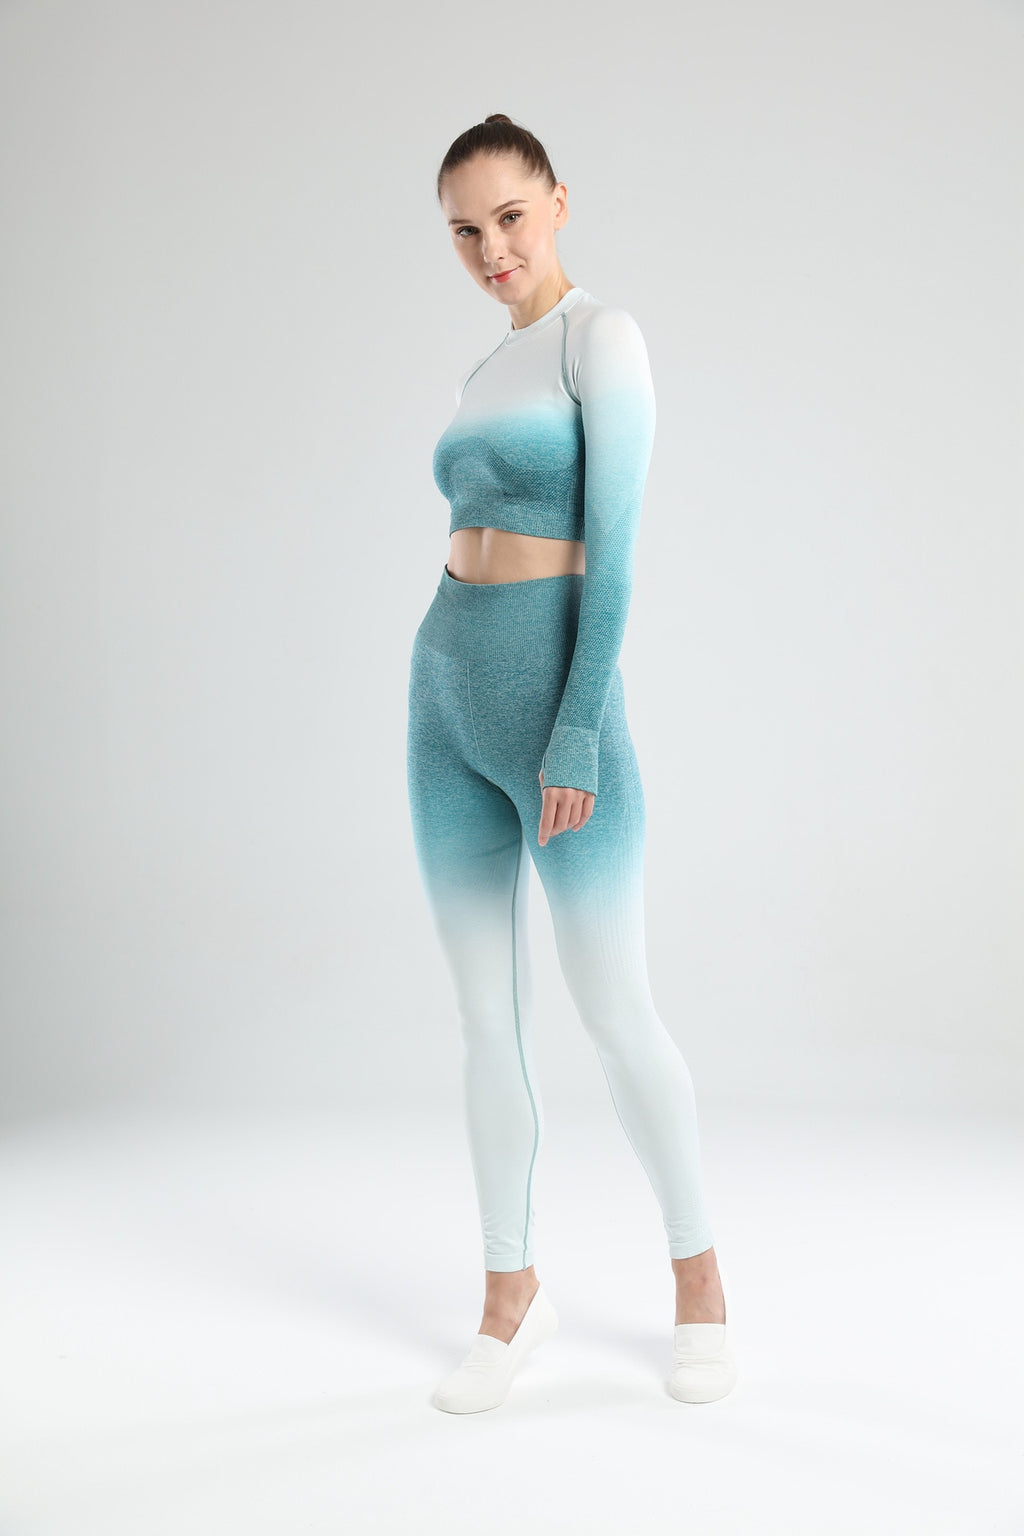 Astoria Seamless Ombre Sleeved Crop - Teal